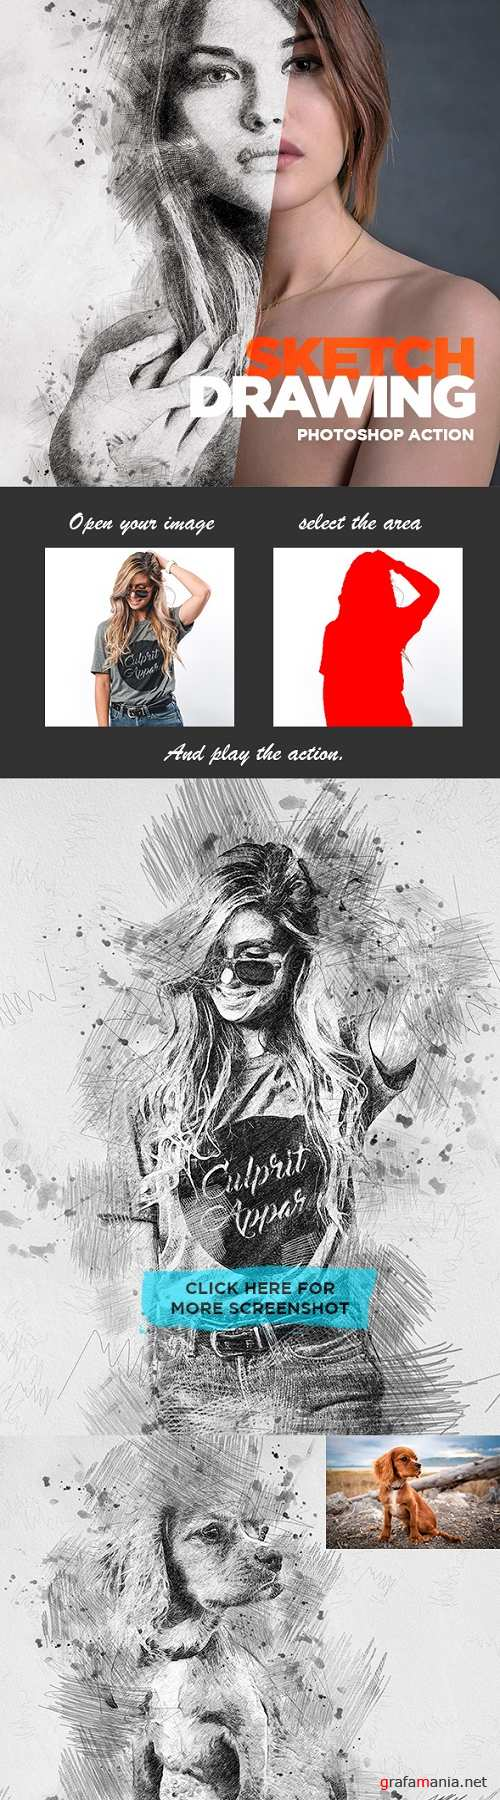 Sketch Drawing - Photoshop Action 22588545